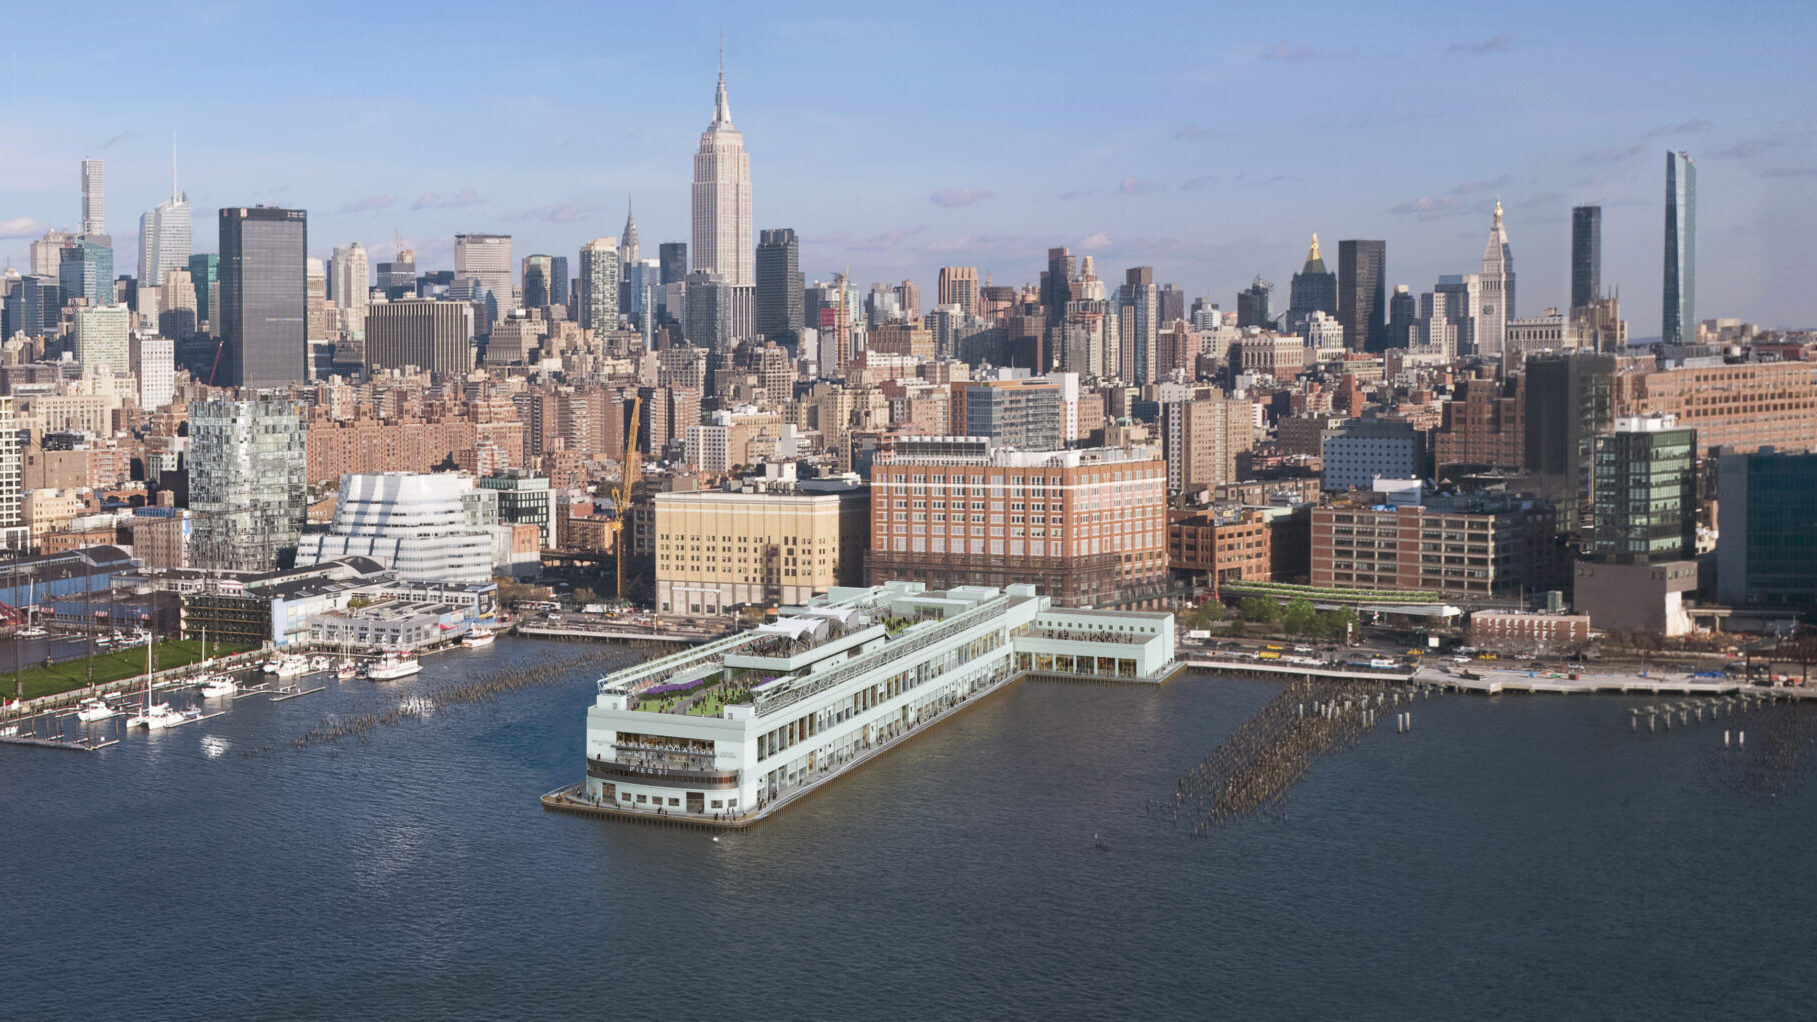 Pier 57 Rendering Overview